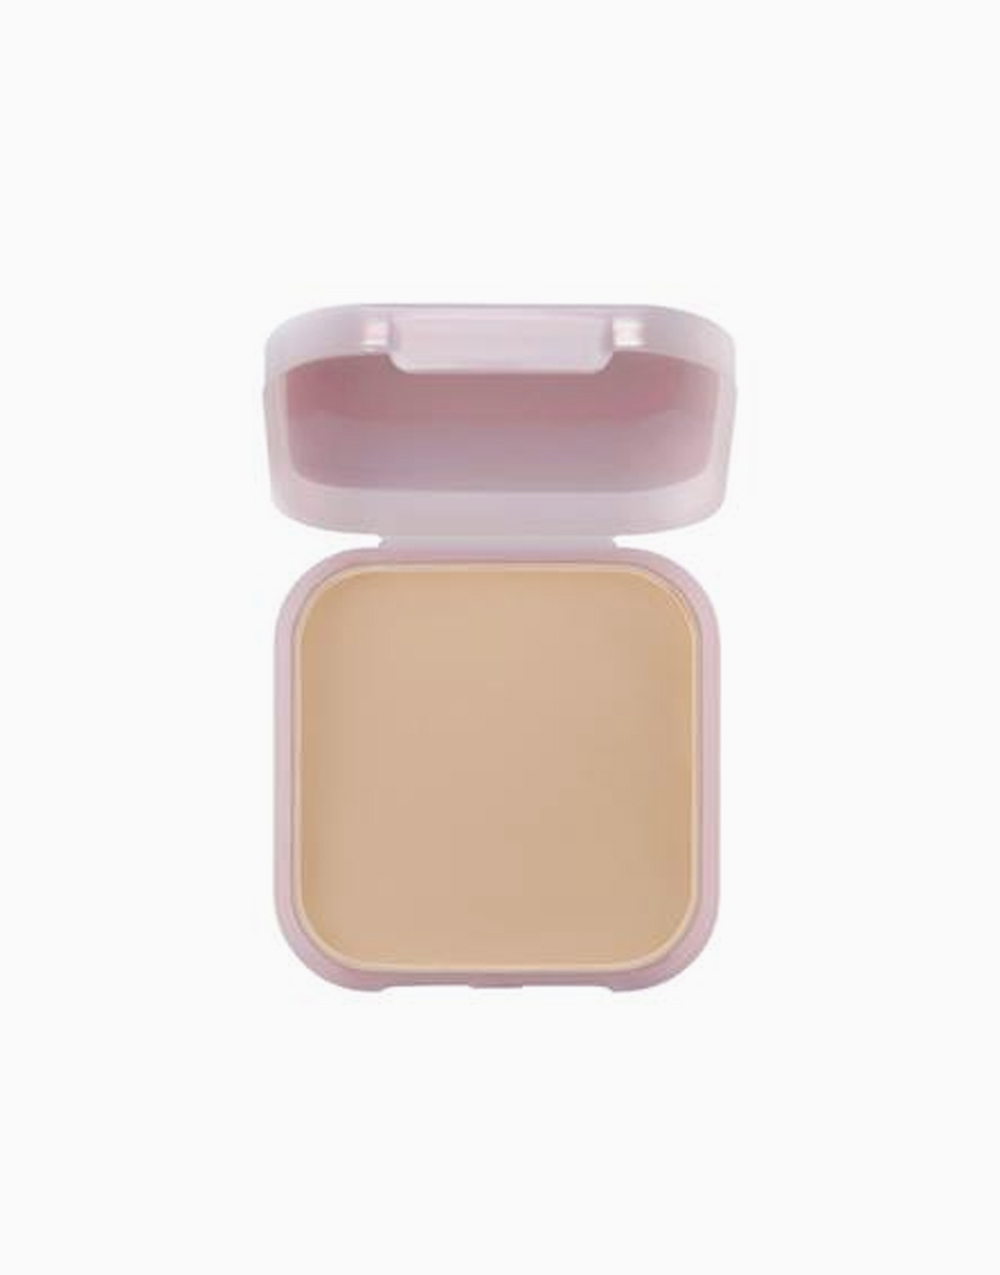 Clear Smooth All in One Refill by Maybelline | Nude Beige